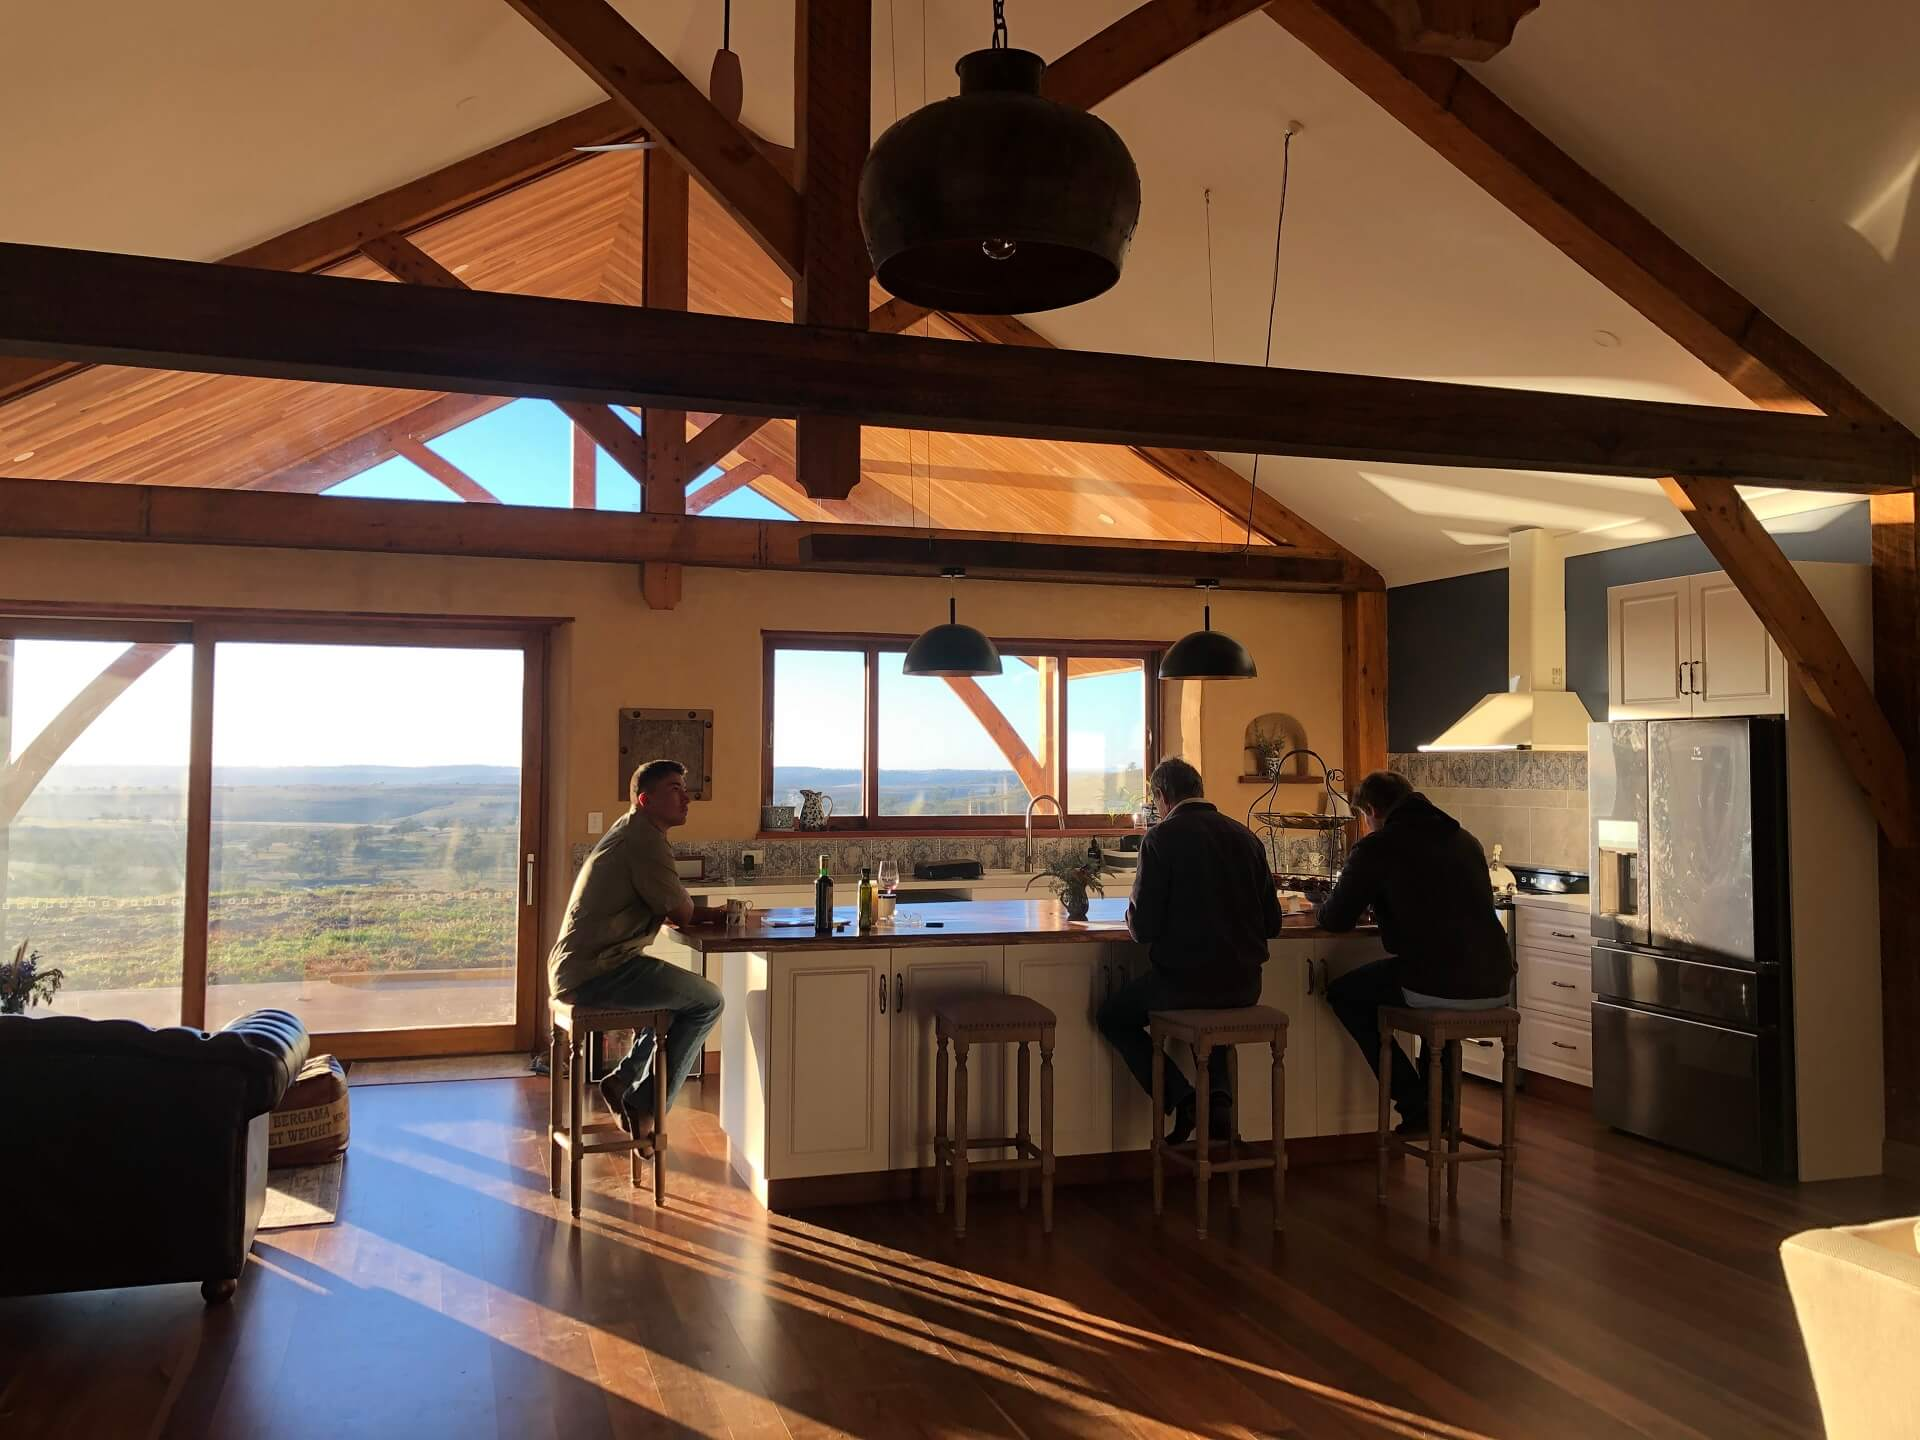 Farm house kitchen with exposed timber beams and trusses, glazed gables and exapnsive views over the countryside